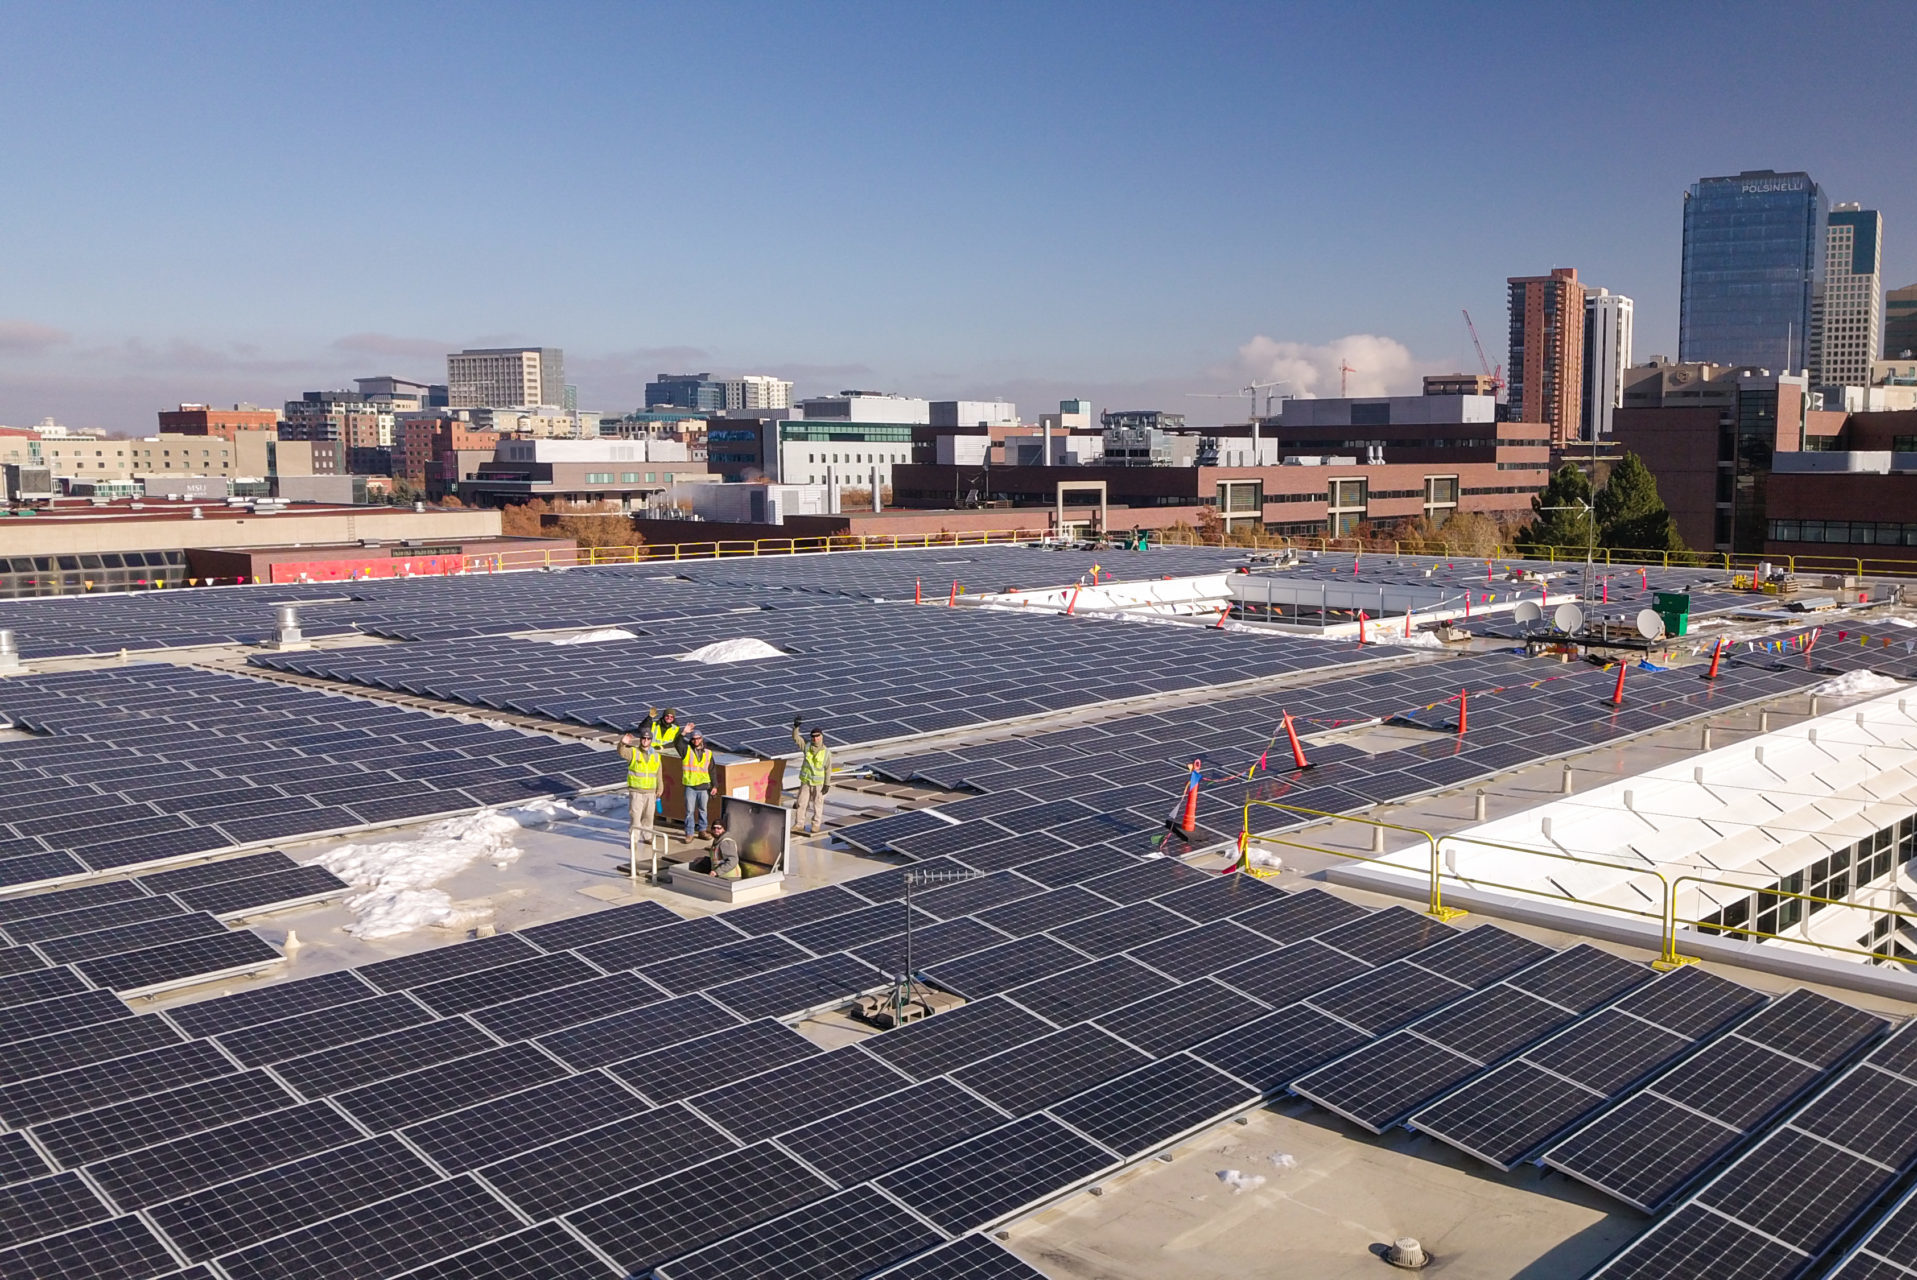 denver rooftop solar array with workers waving